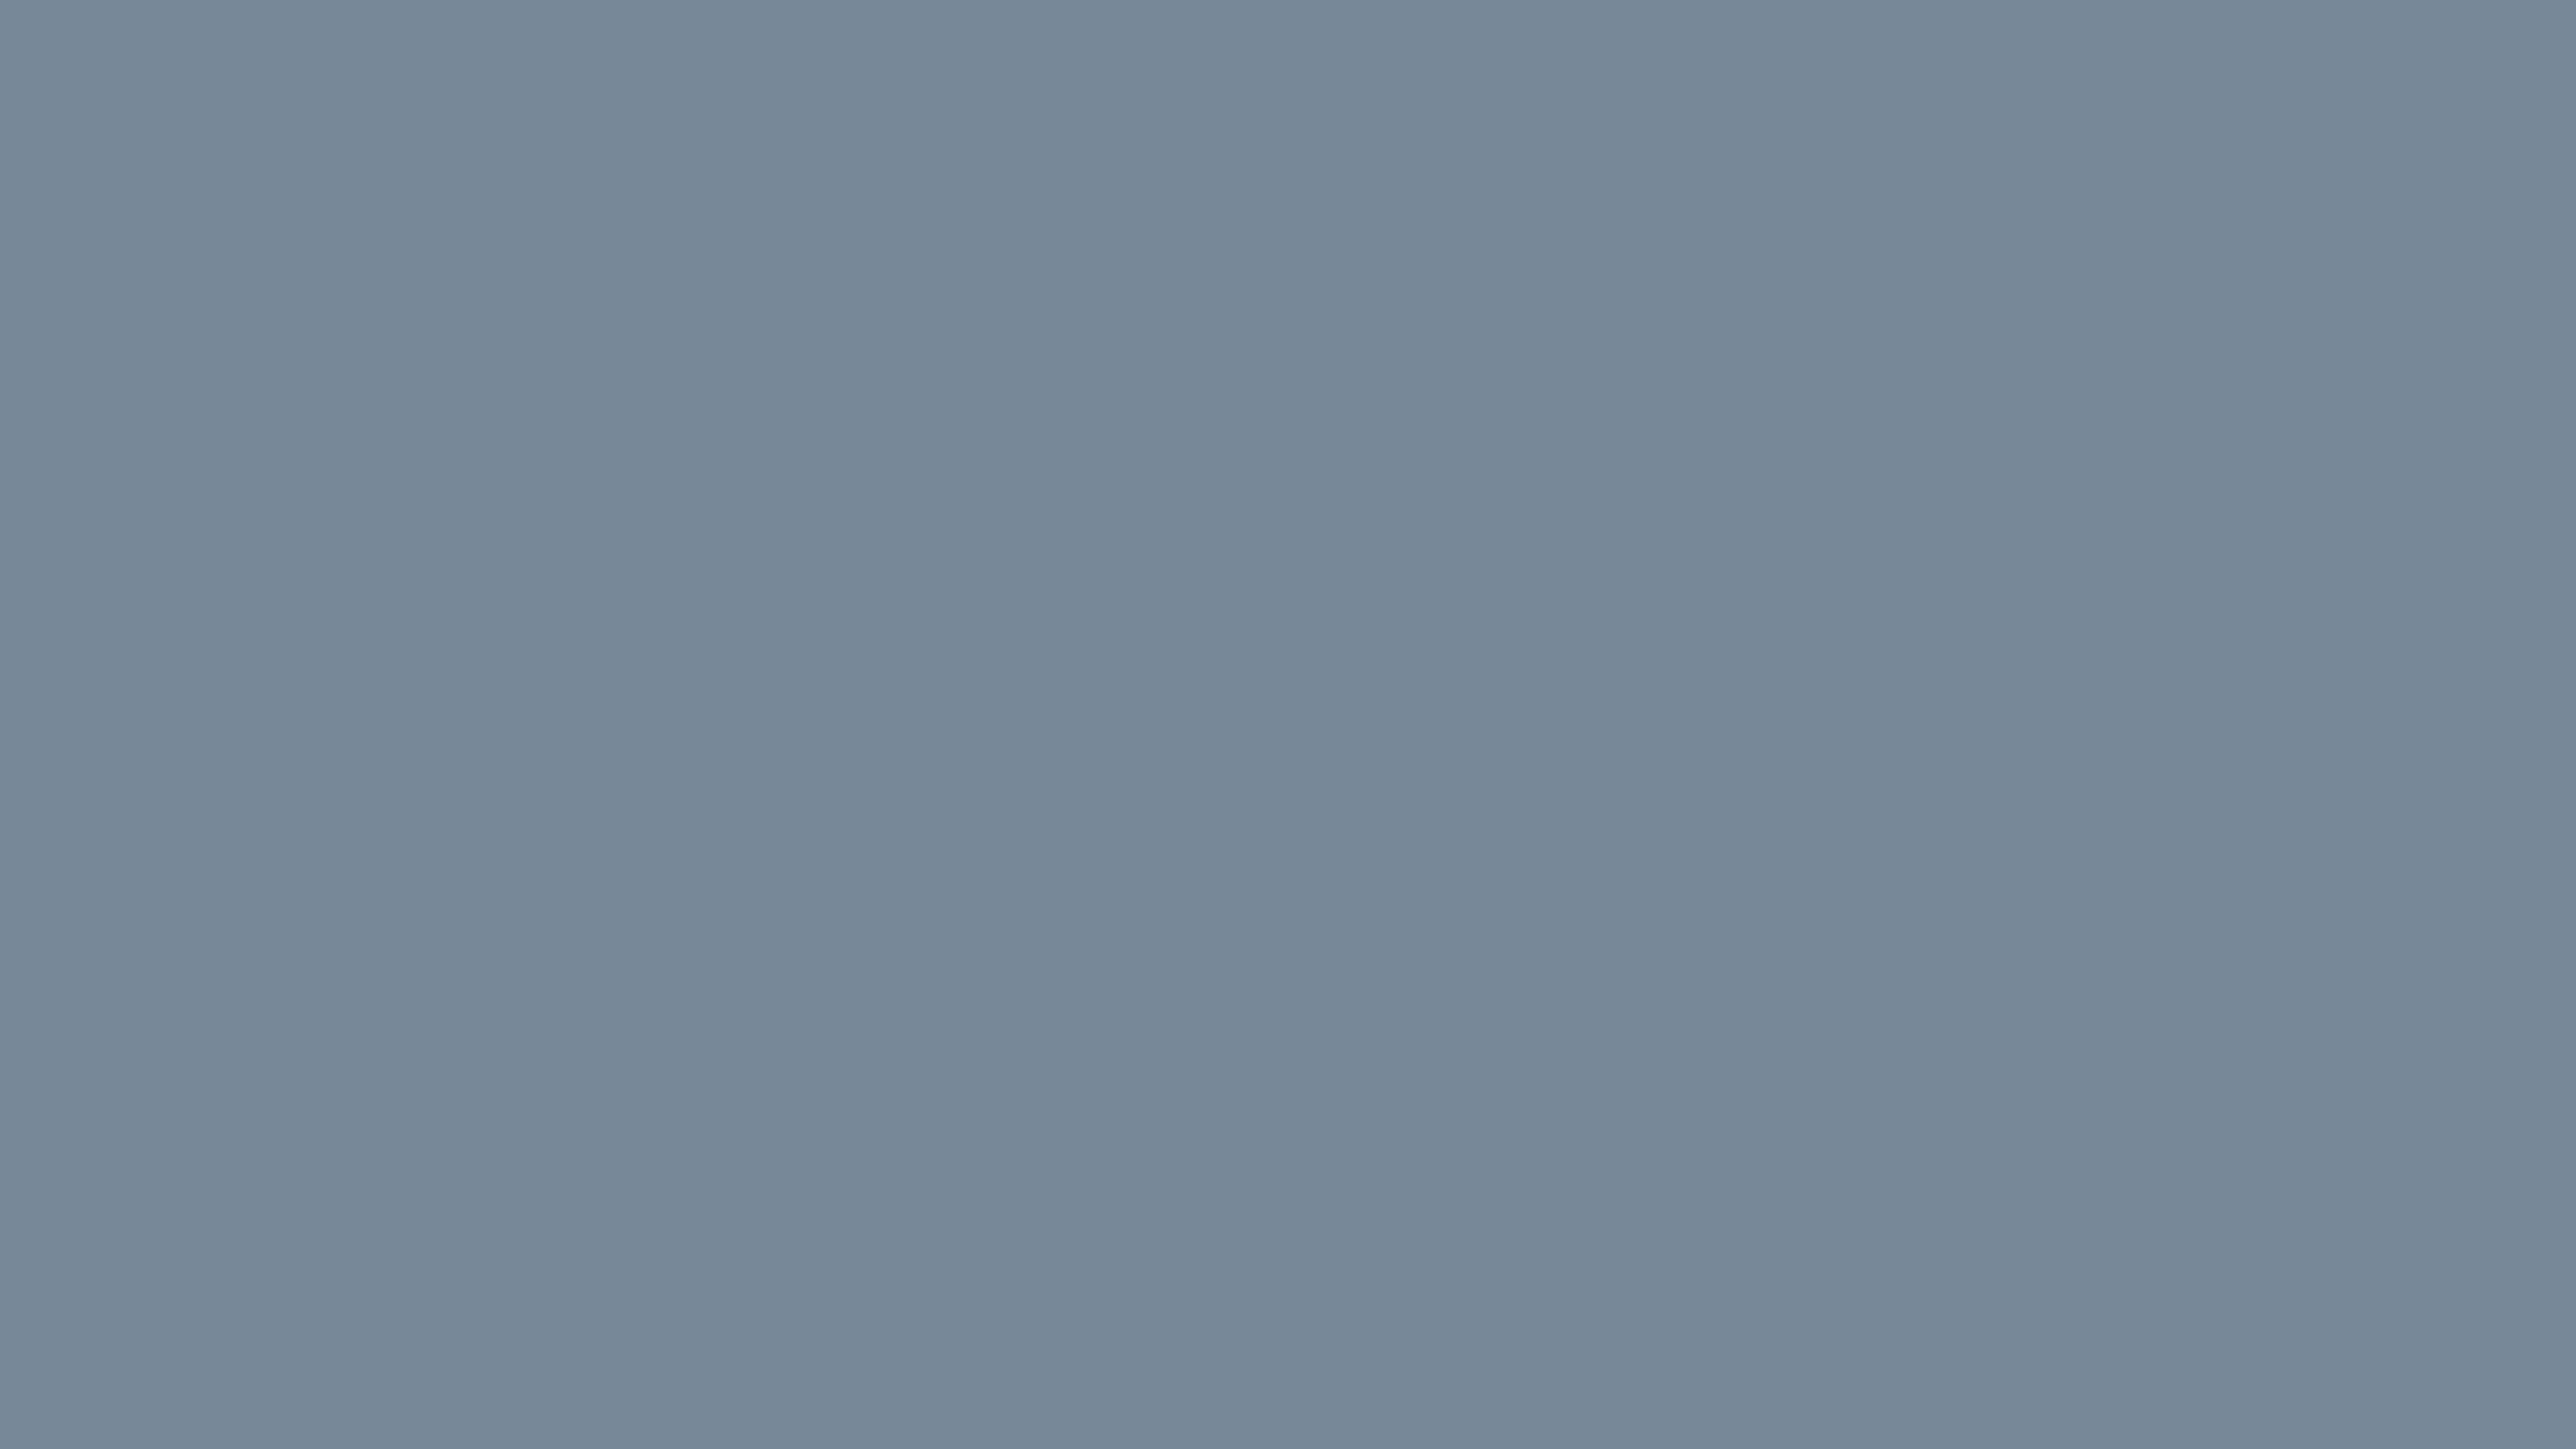 Light slate gray solid color background wallpaper 5120x2880 - Solid light gray wallpaper ...